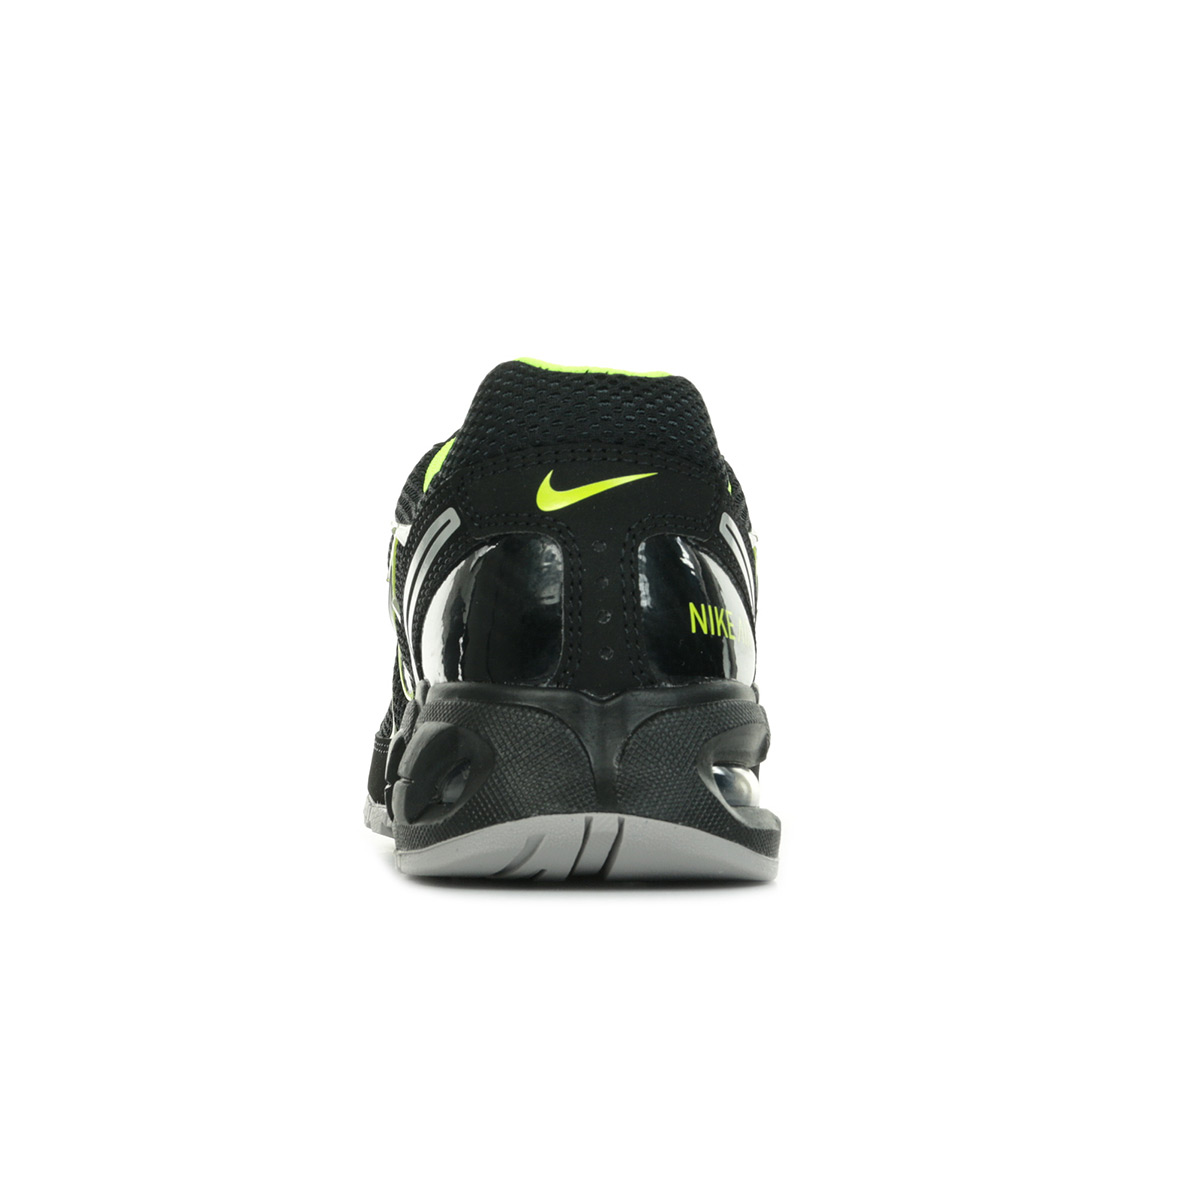 Nike Air Max Torch 4 343846011, Baskets mode homme